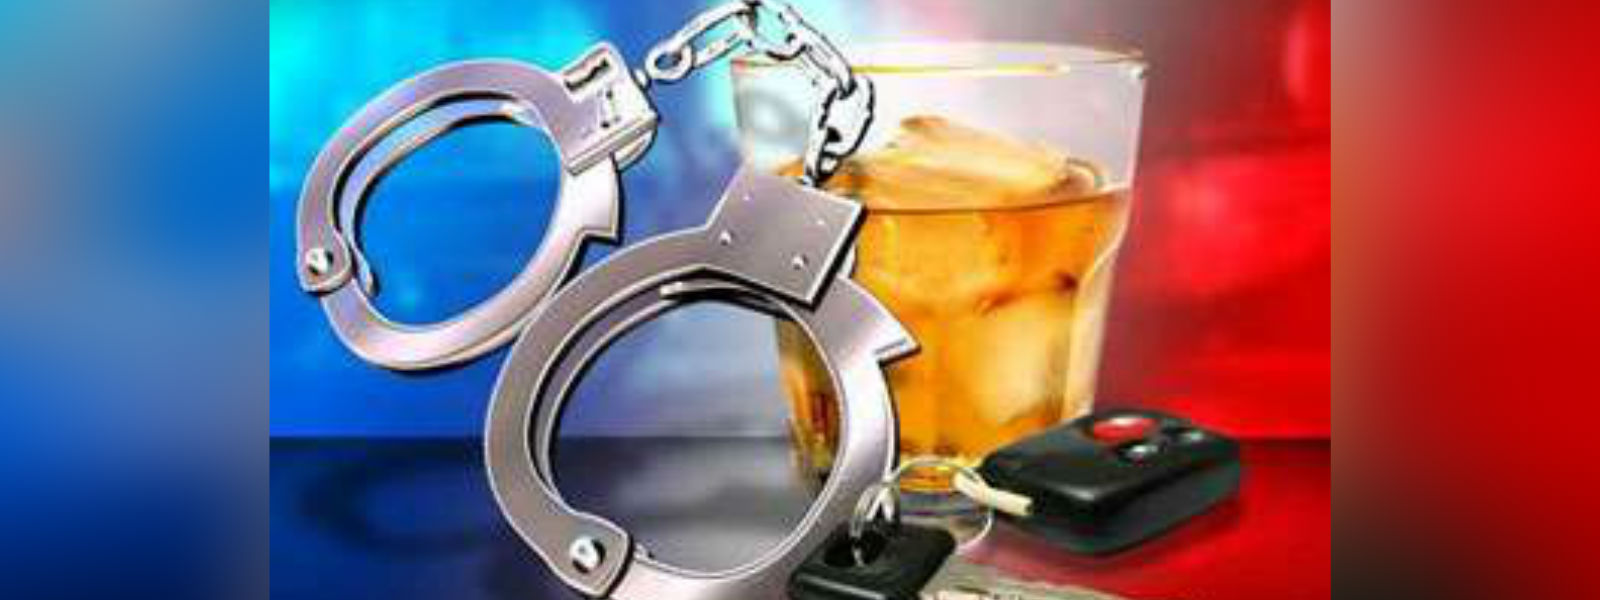 329 drunk drivers arrested in 24 hour operation